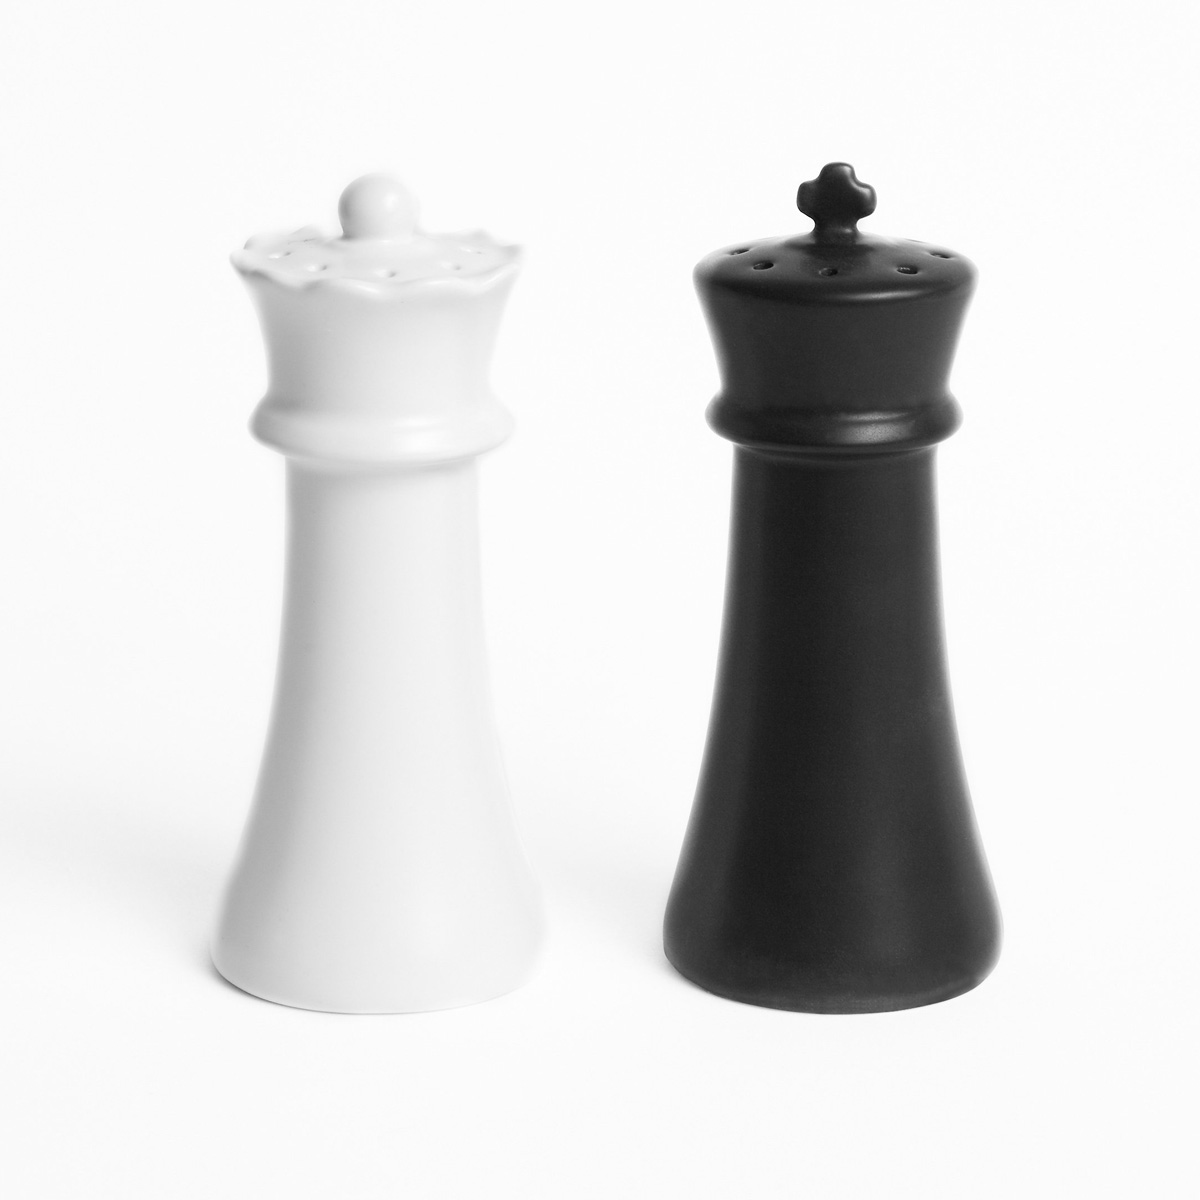 Modern Salt And Pepper Shakers Checkmates Salt And Pepper Shakers